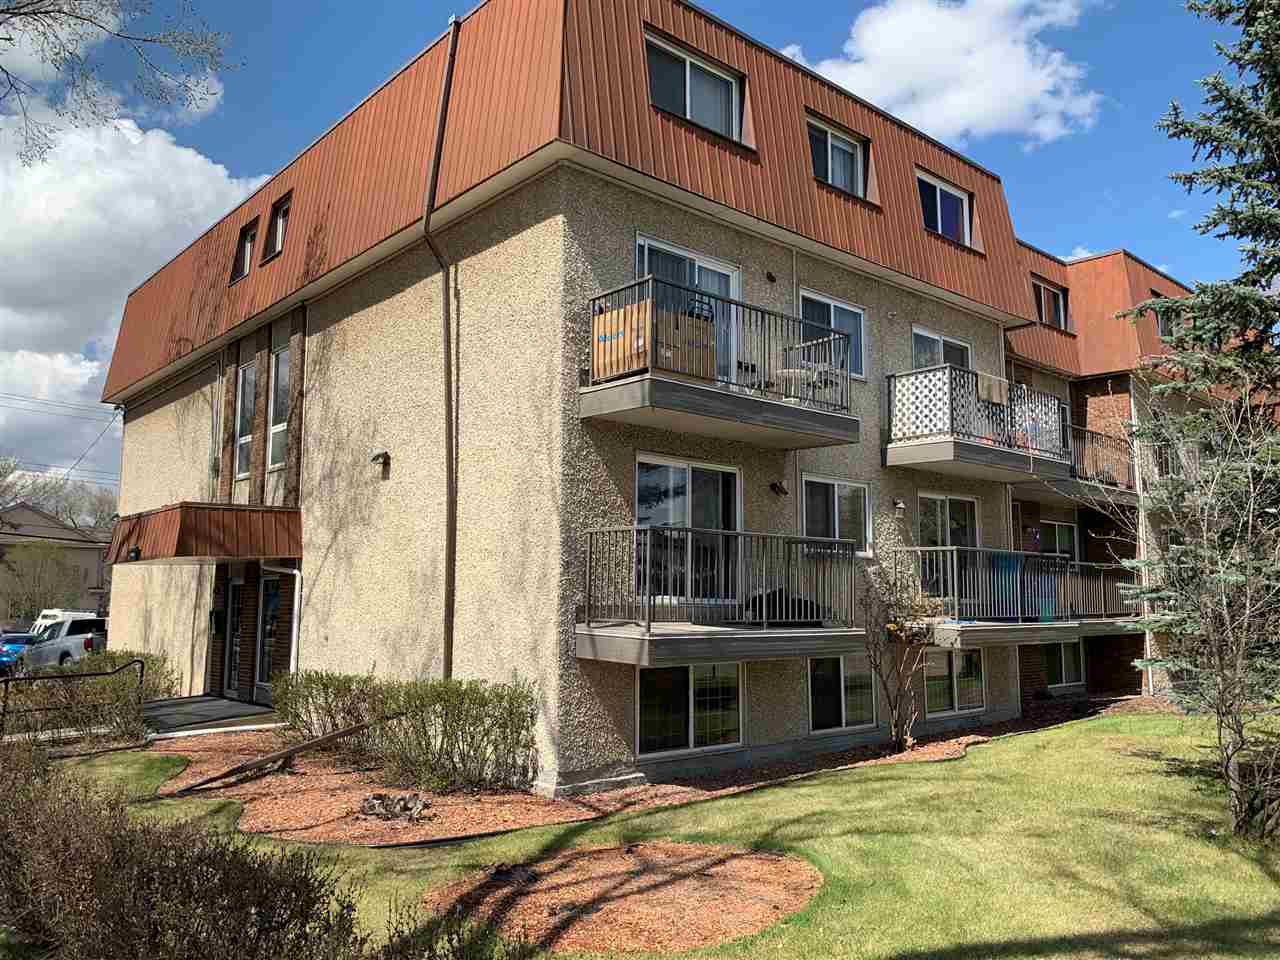 FEATURED LISTING: 204 - 12404 114 Avenue Edmonton